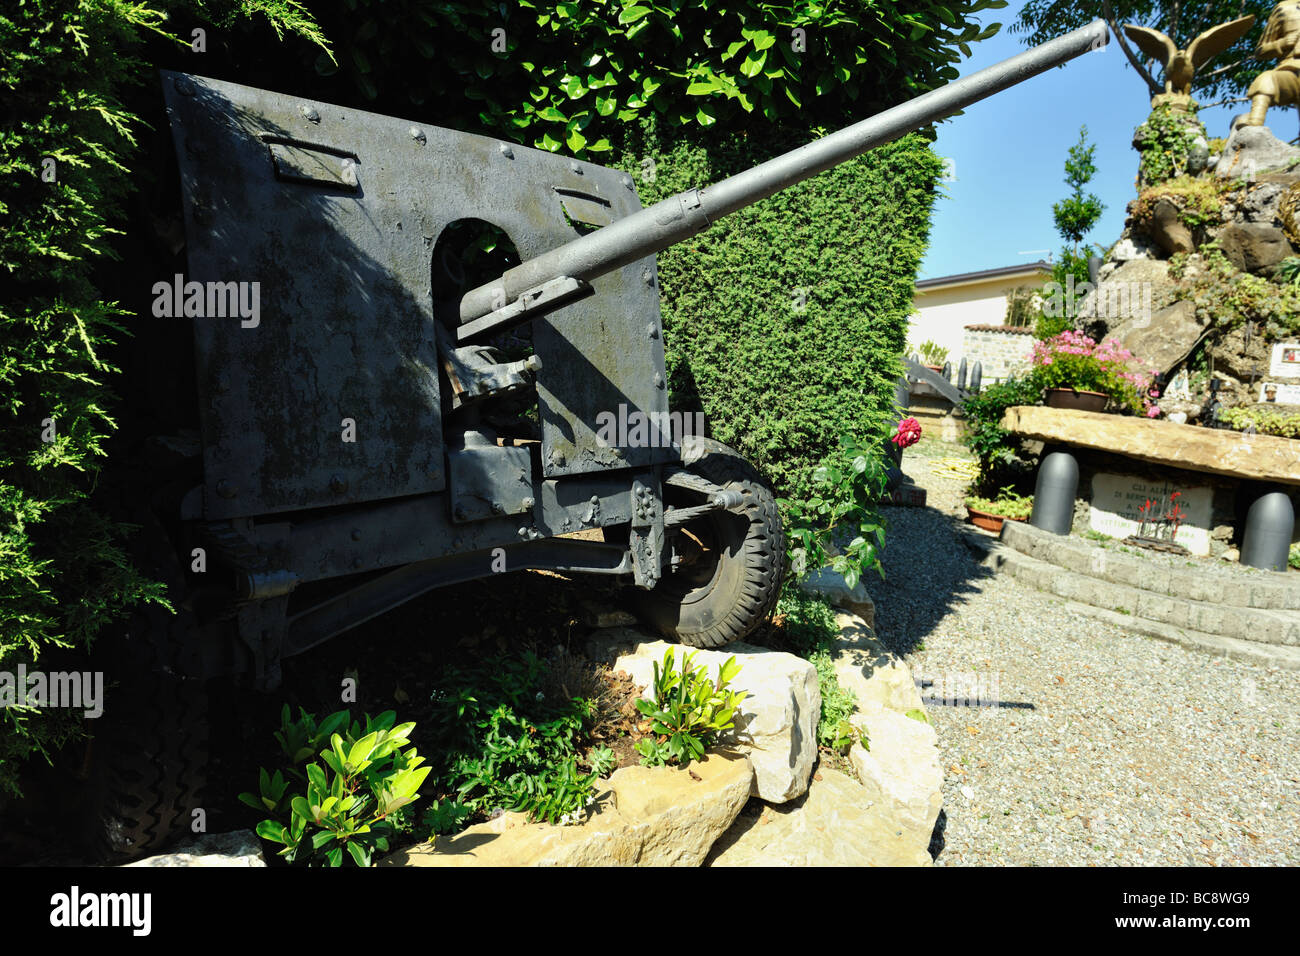 Old field gun at the memorial to the Alpini the elite mountain warfare soldiers of the Italian Army - Stock Image